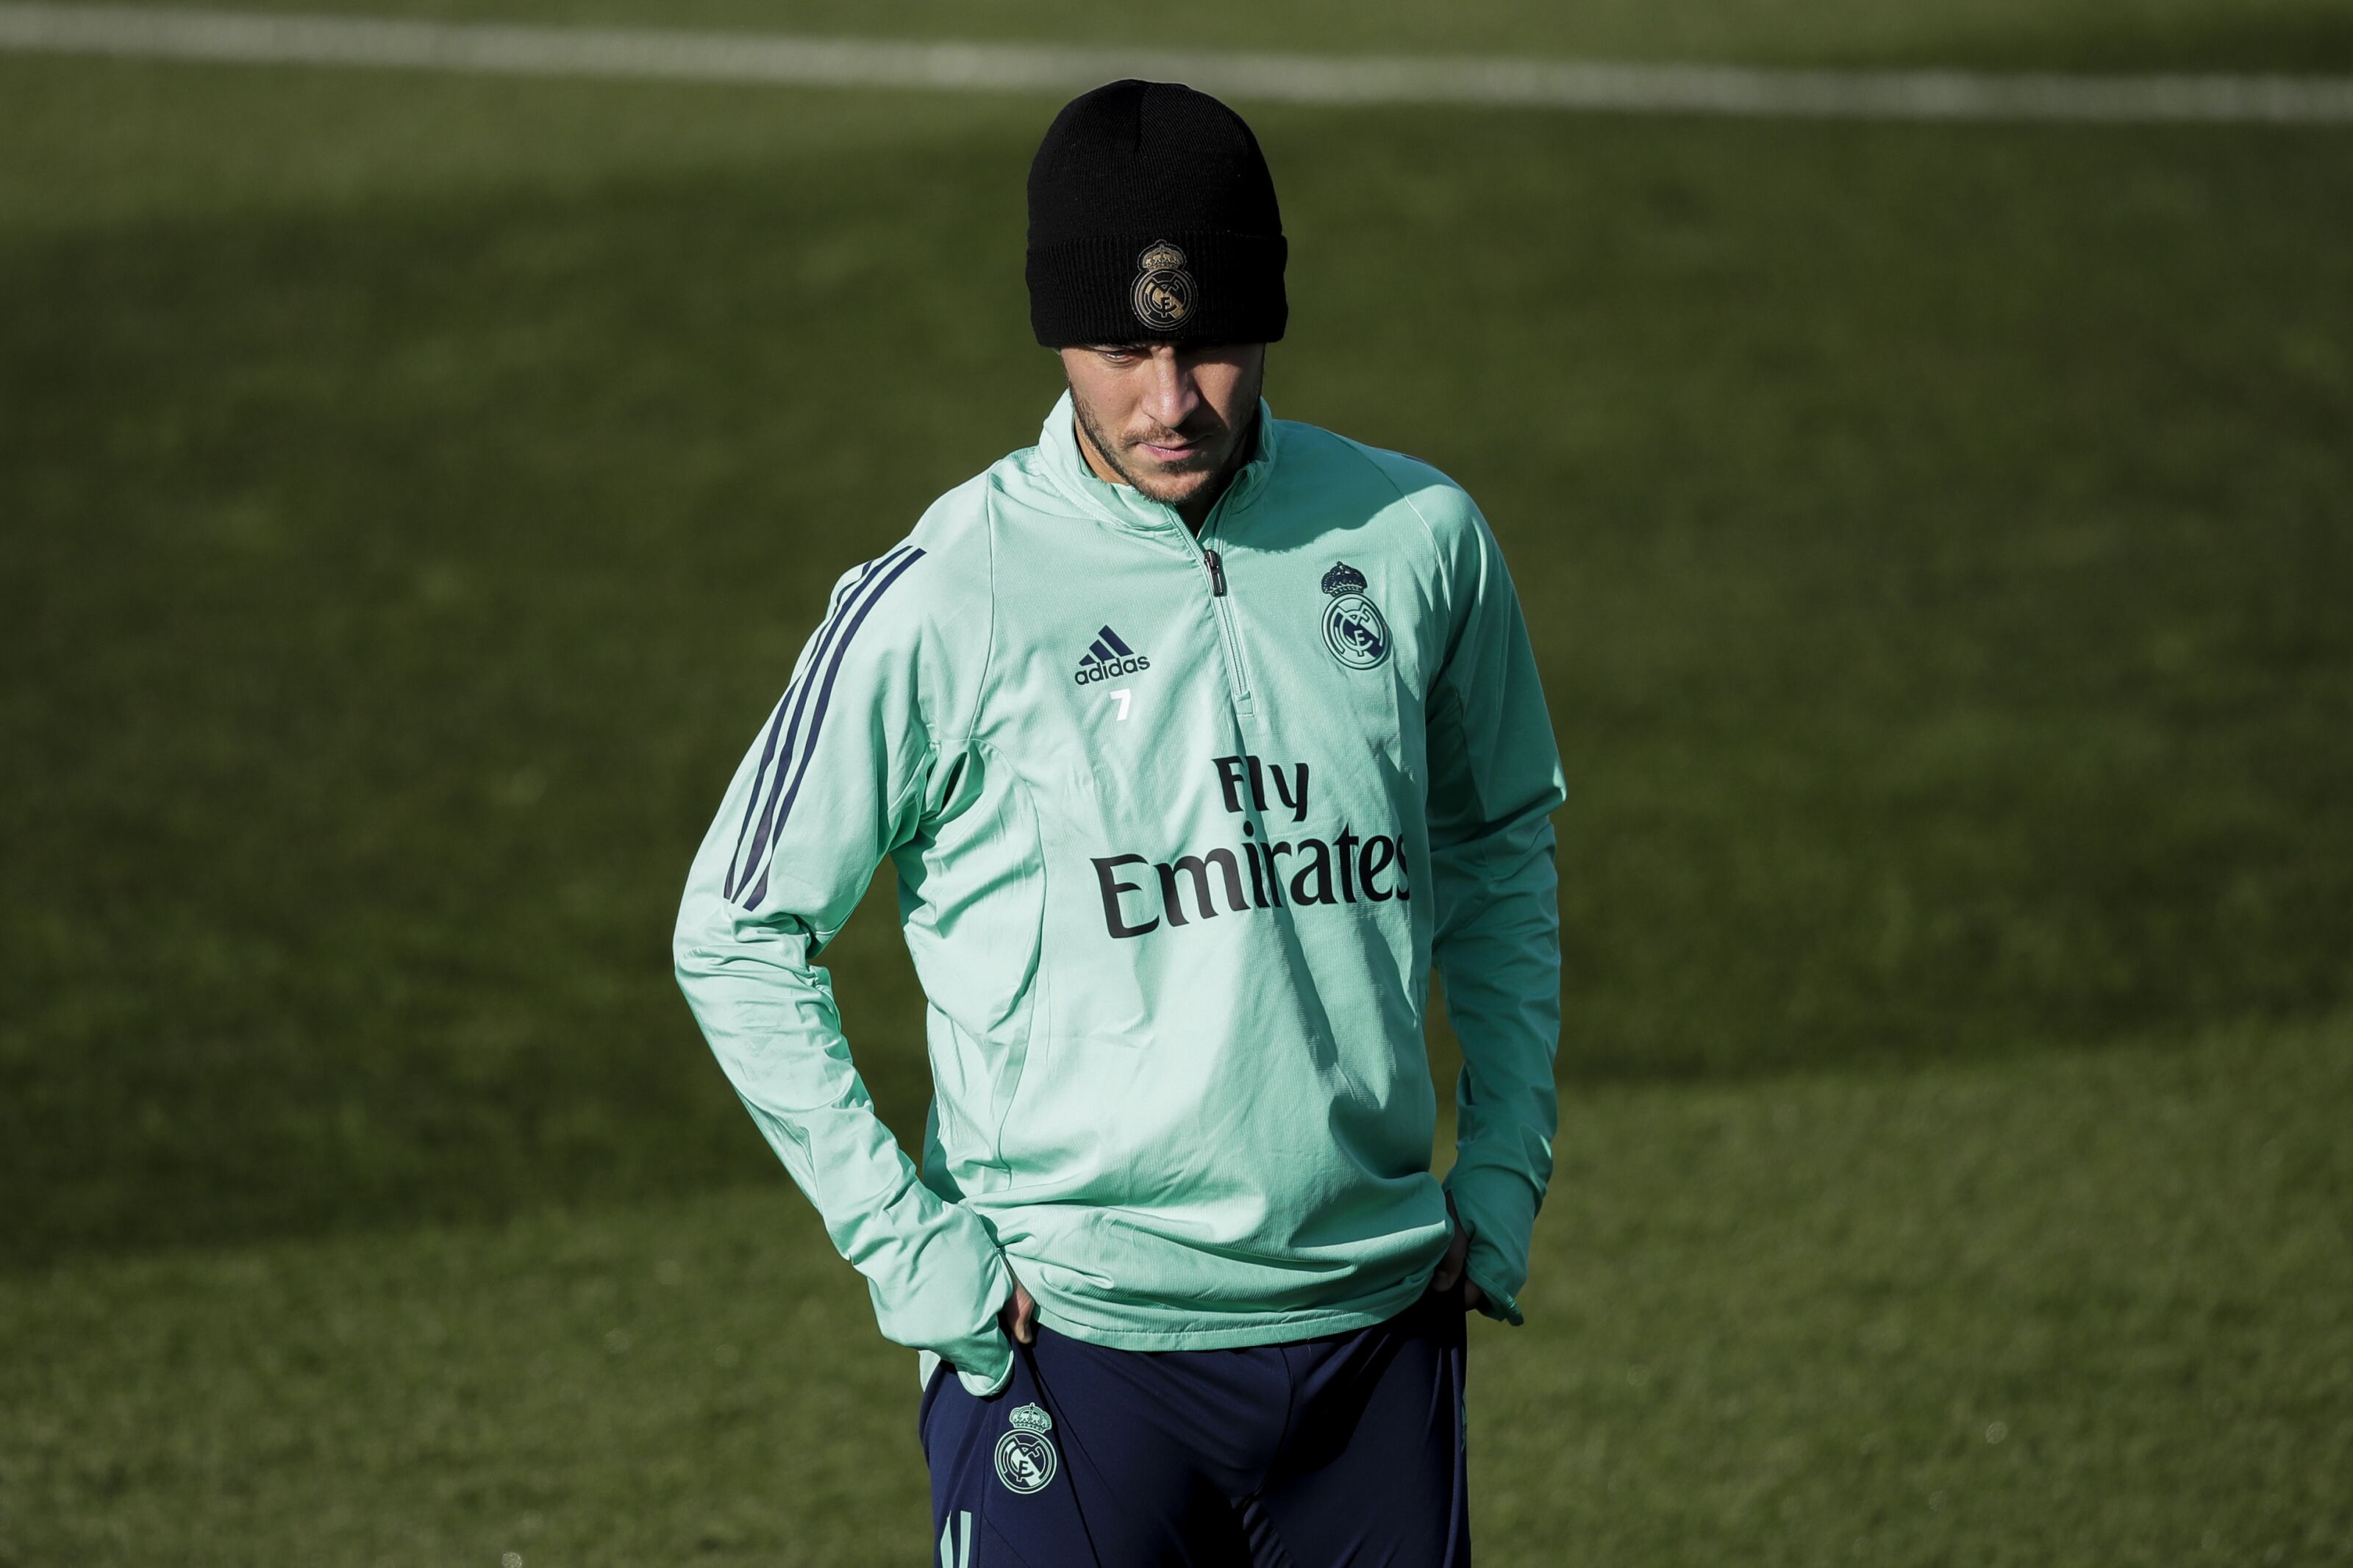 Real Madrid: Eden Hazard is nearing his return to the first team